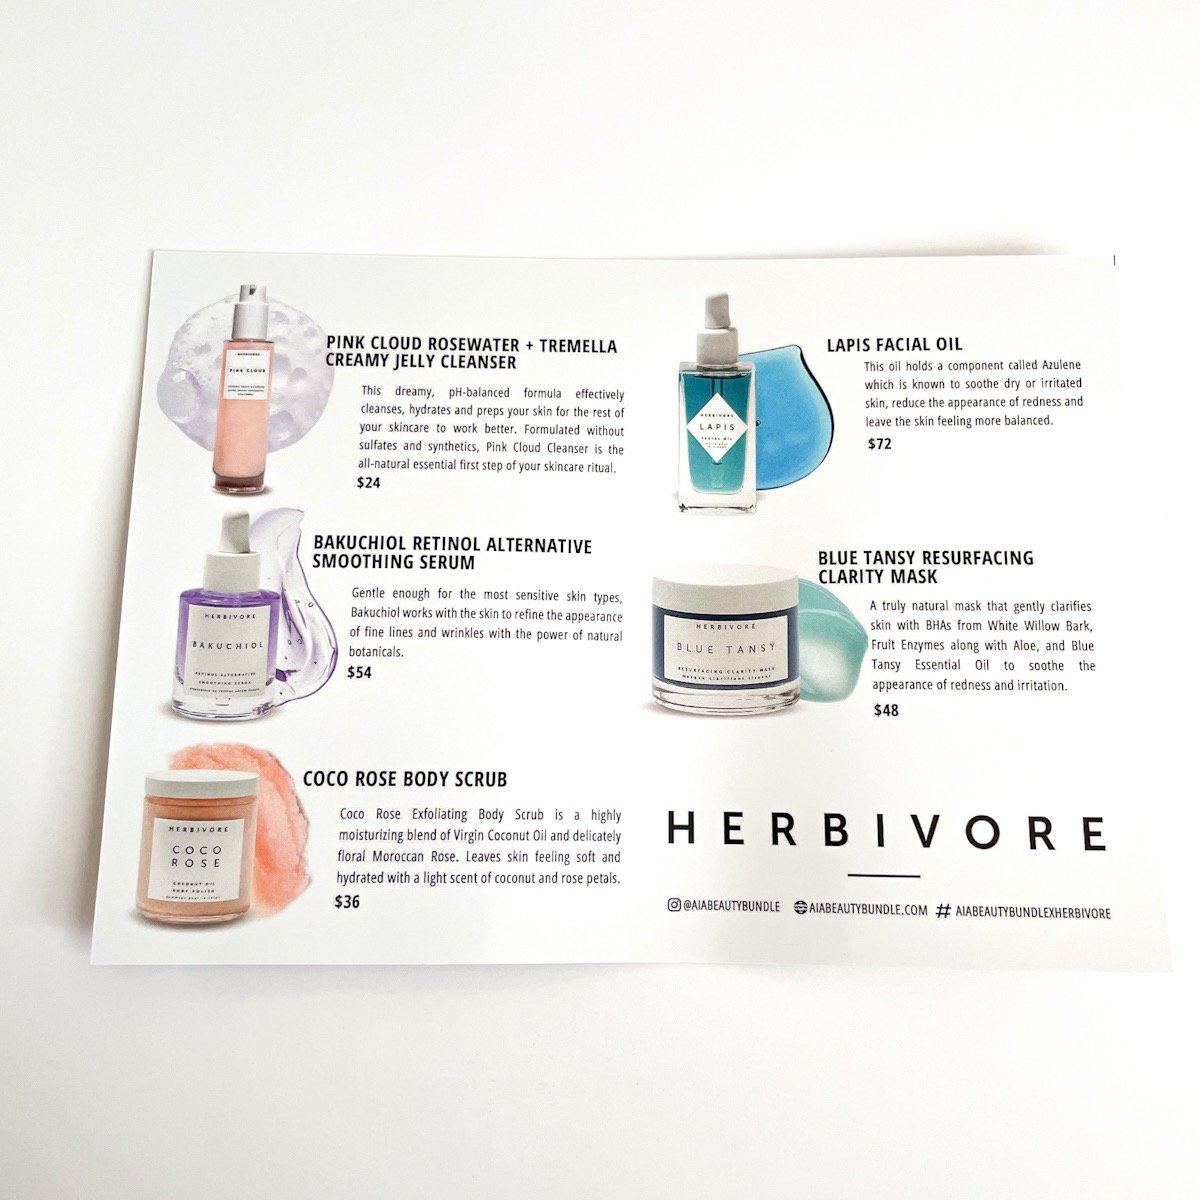 info sheet detailing products in box